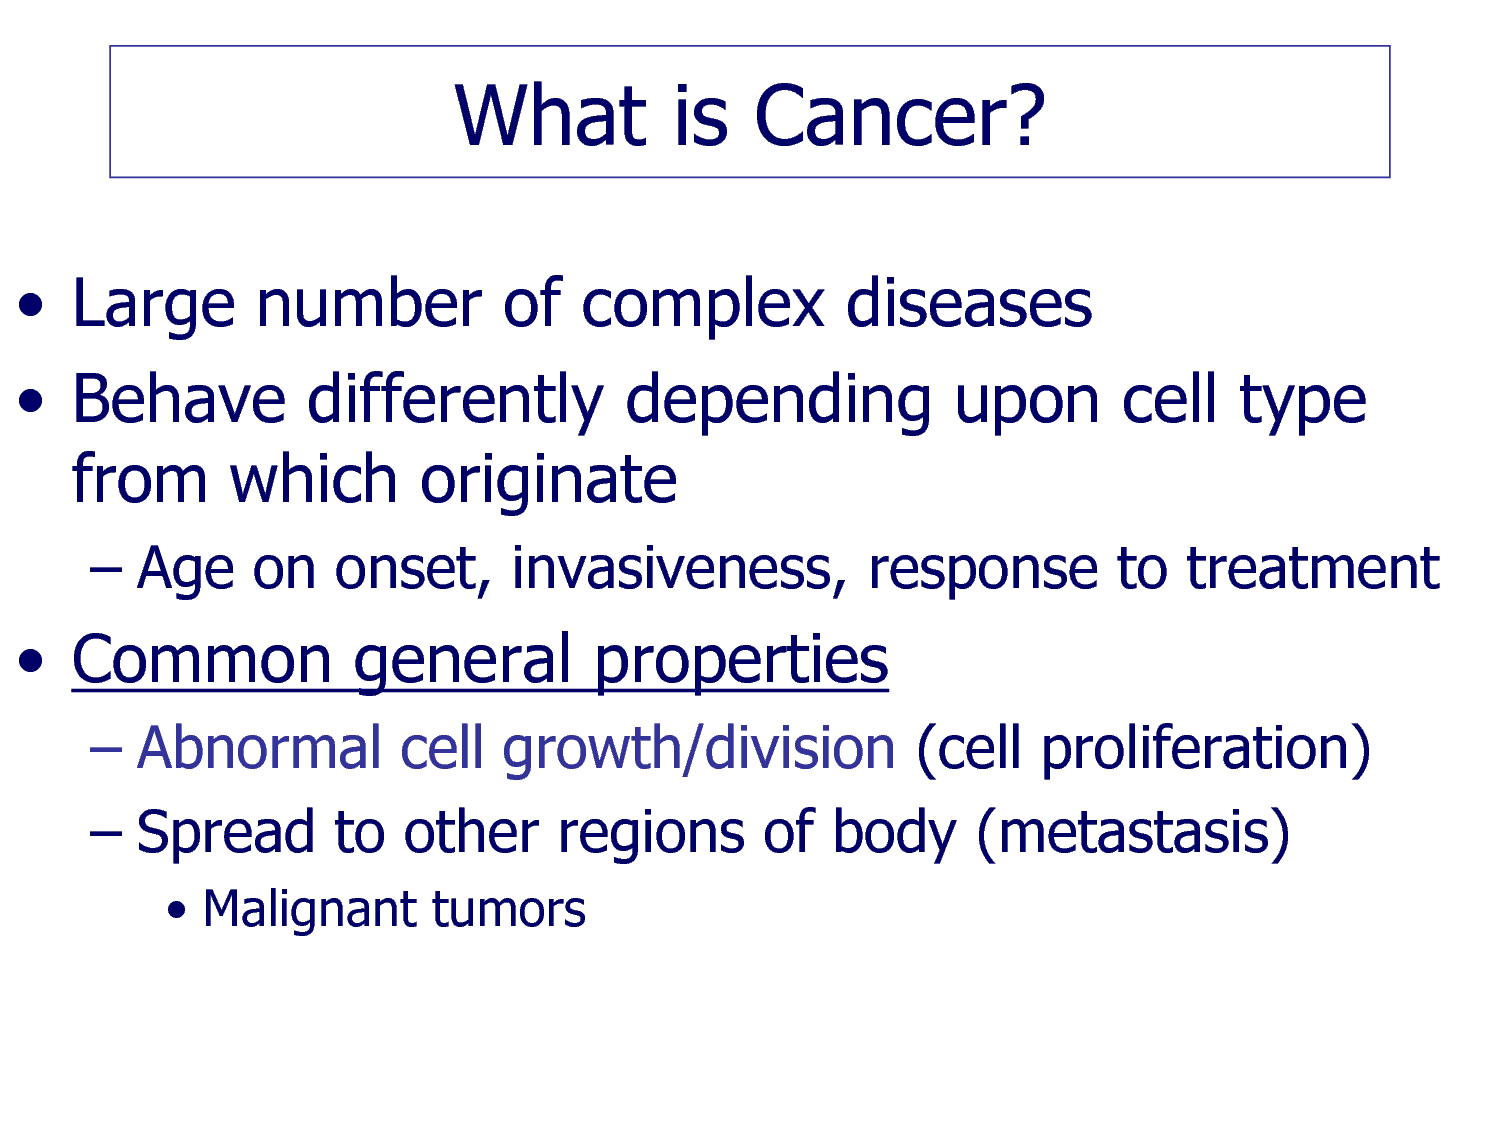 approach to care cancer essay Describe the diagnosis and staging of cancer describe at least three complications of cancer, the side effects of treatment, and methods to lessen physical.